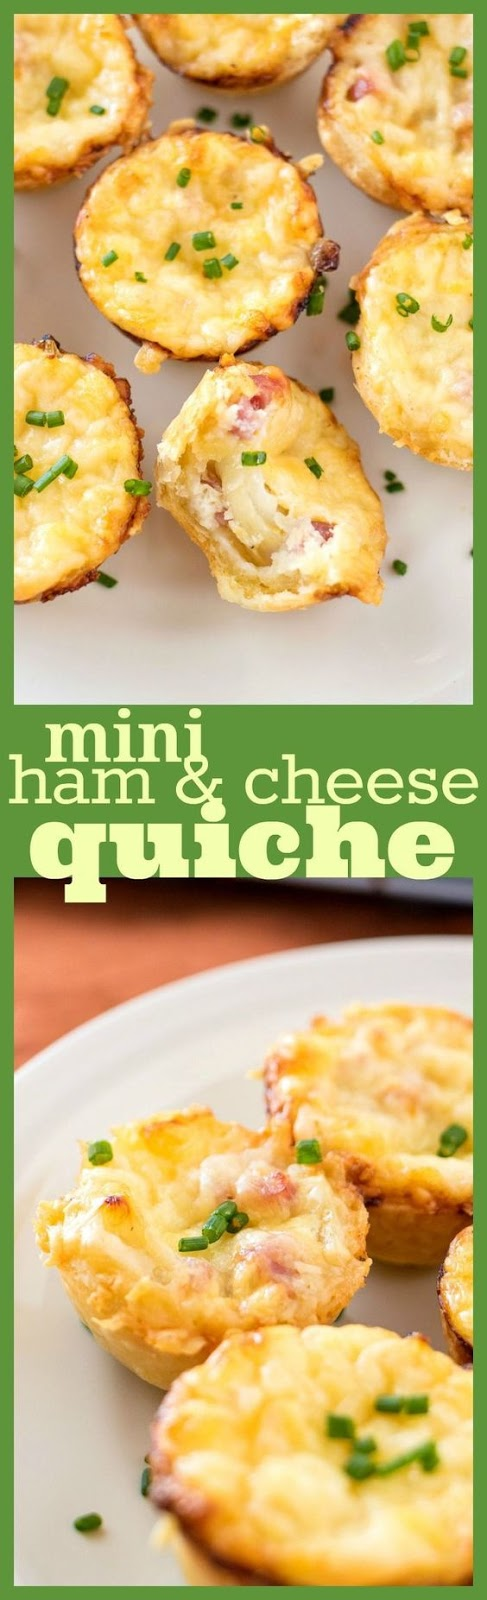 Mini Ham & Cheese Quiche with Caramelized Onions